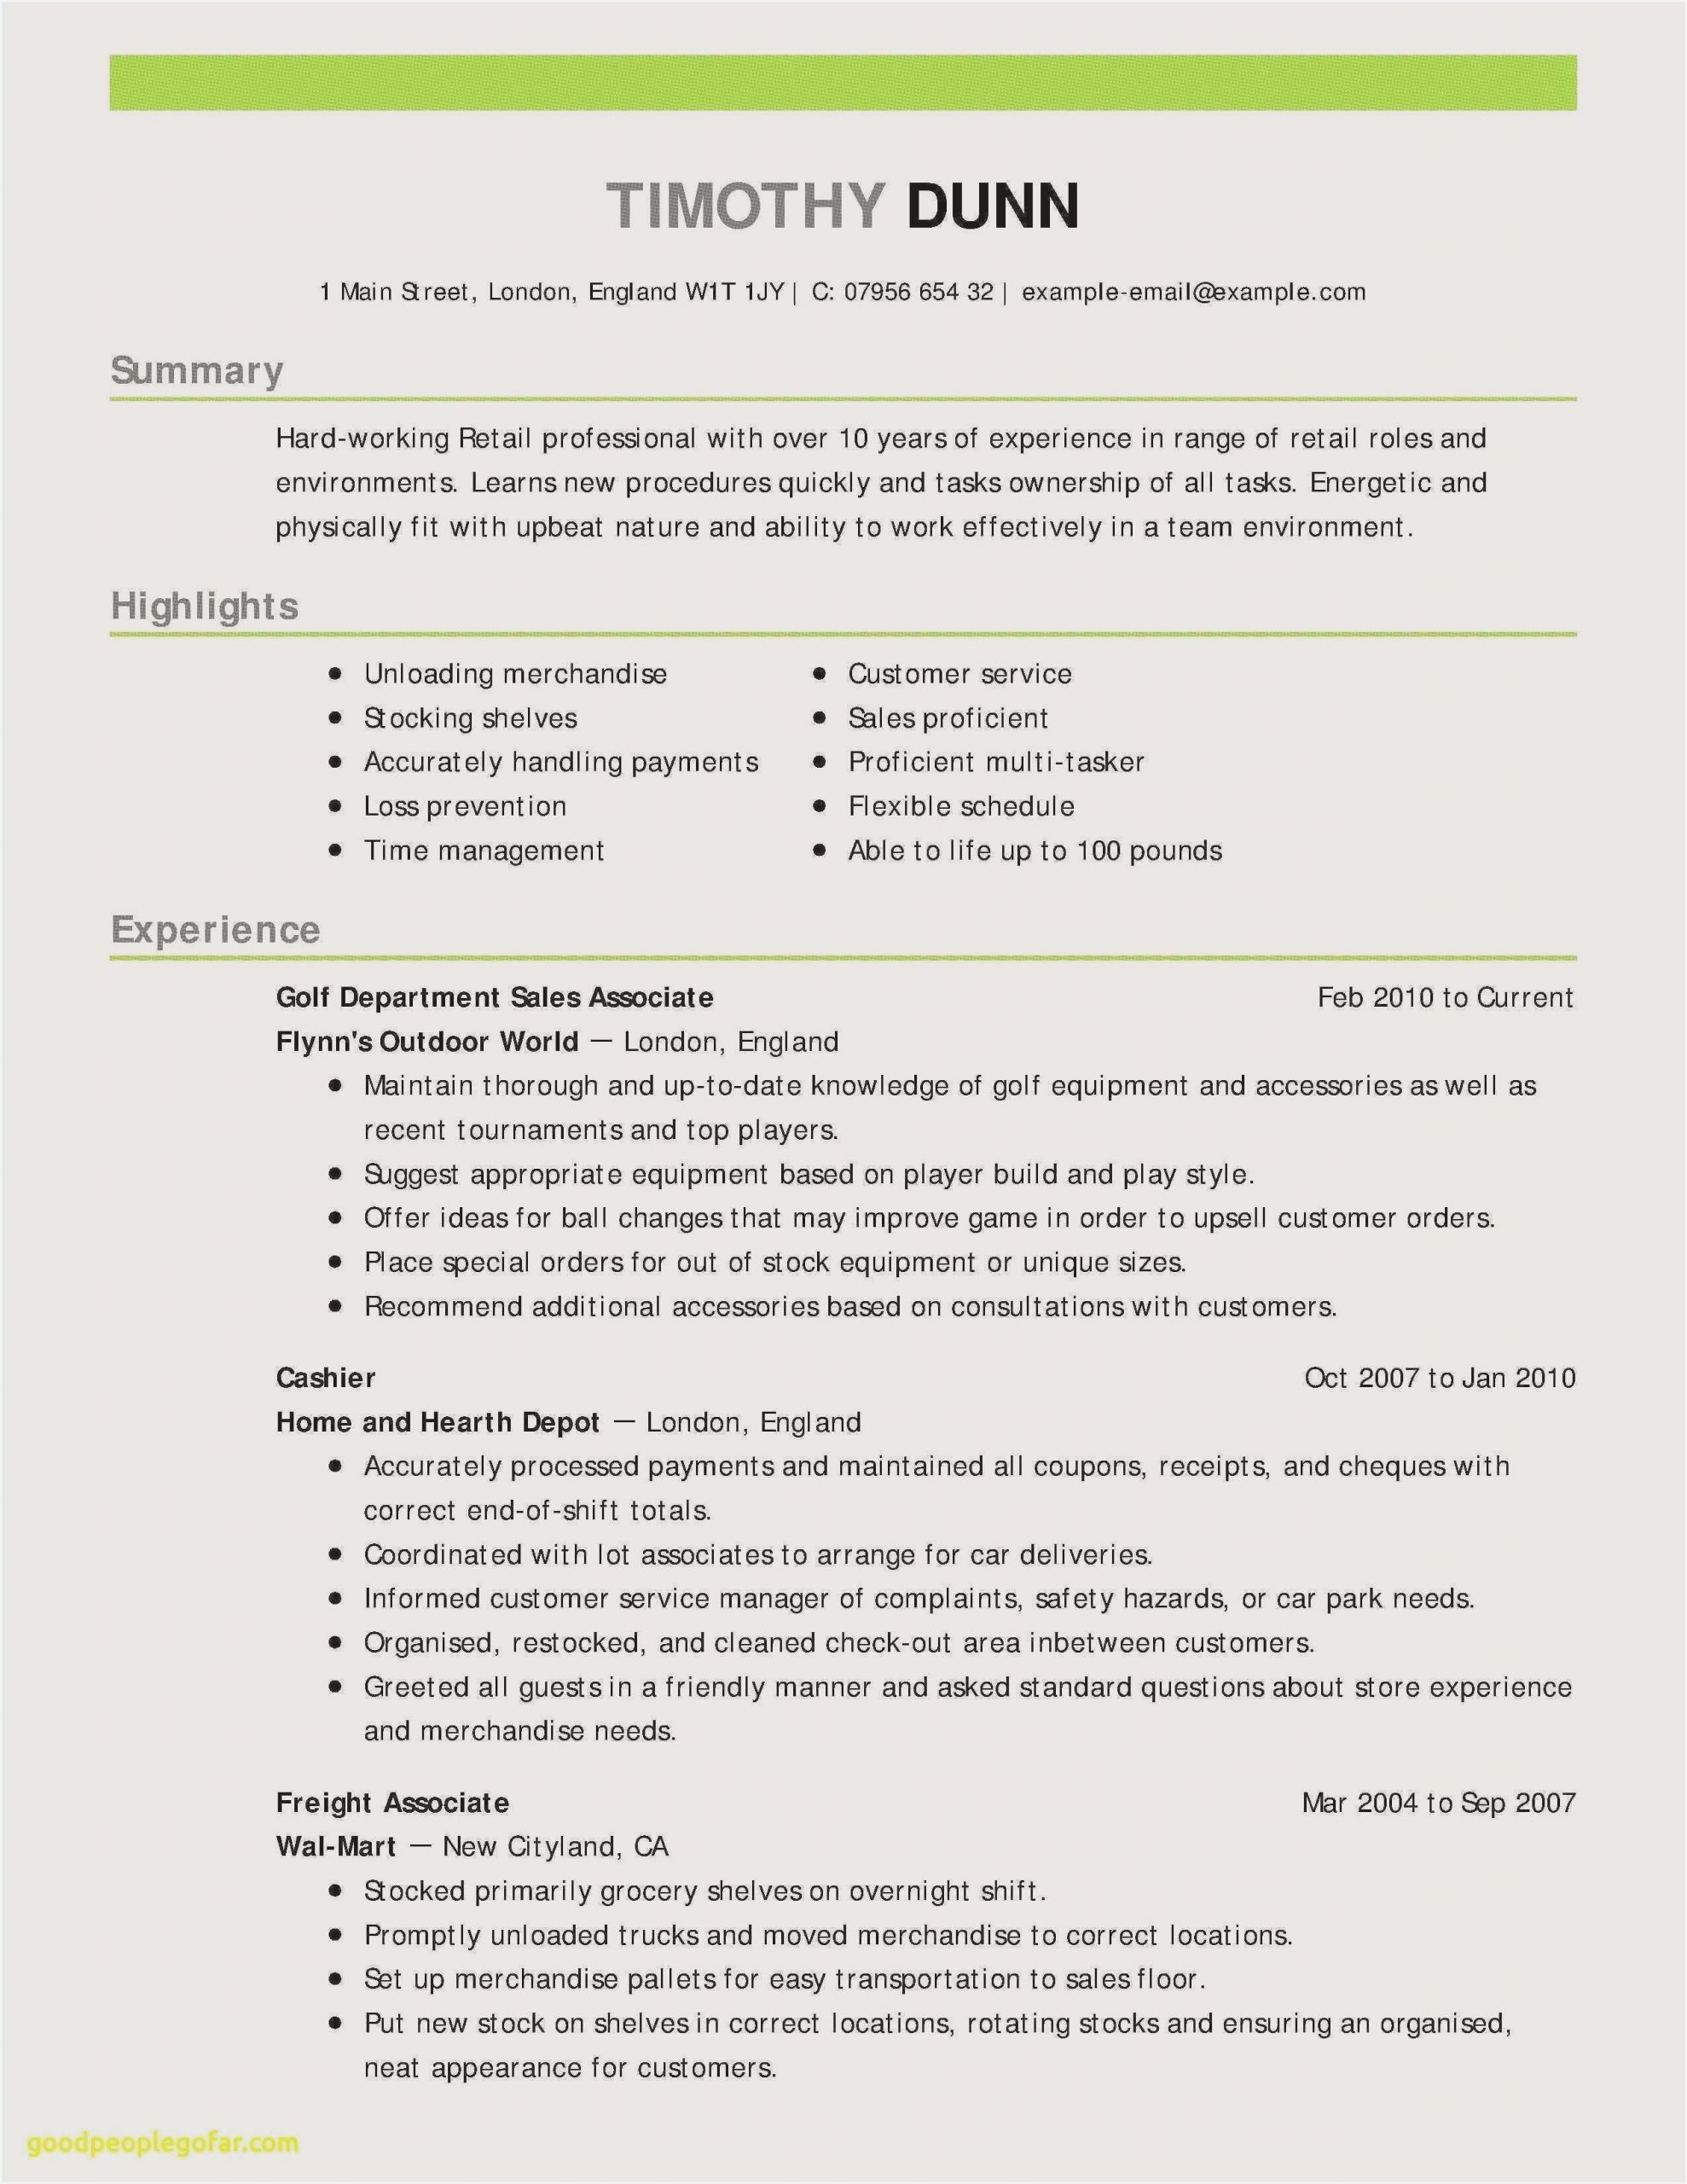 objective resume examples customer service for sample of scaled cashier legal intern job Resume Objective Examples For Customer Service Resume